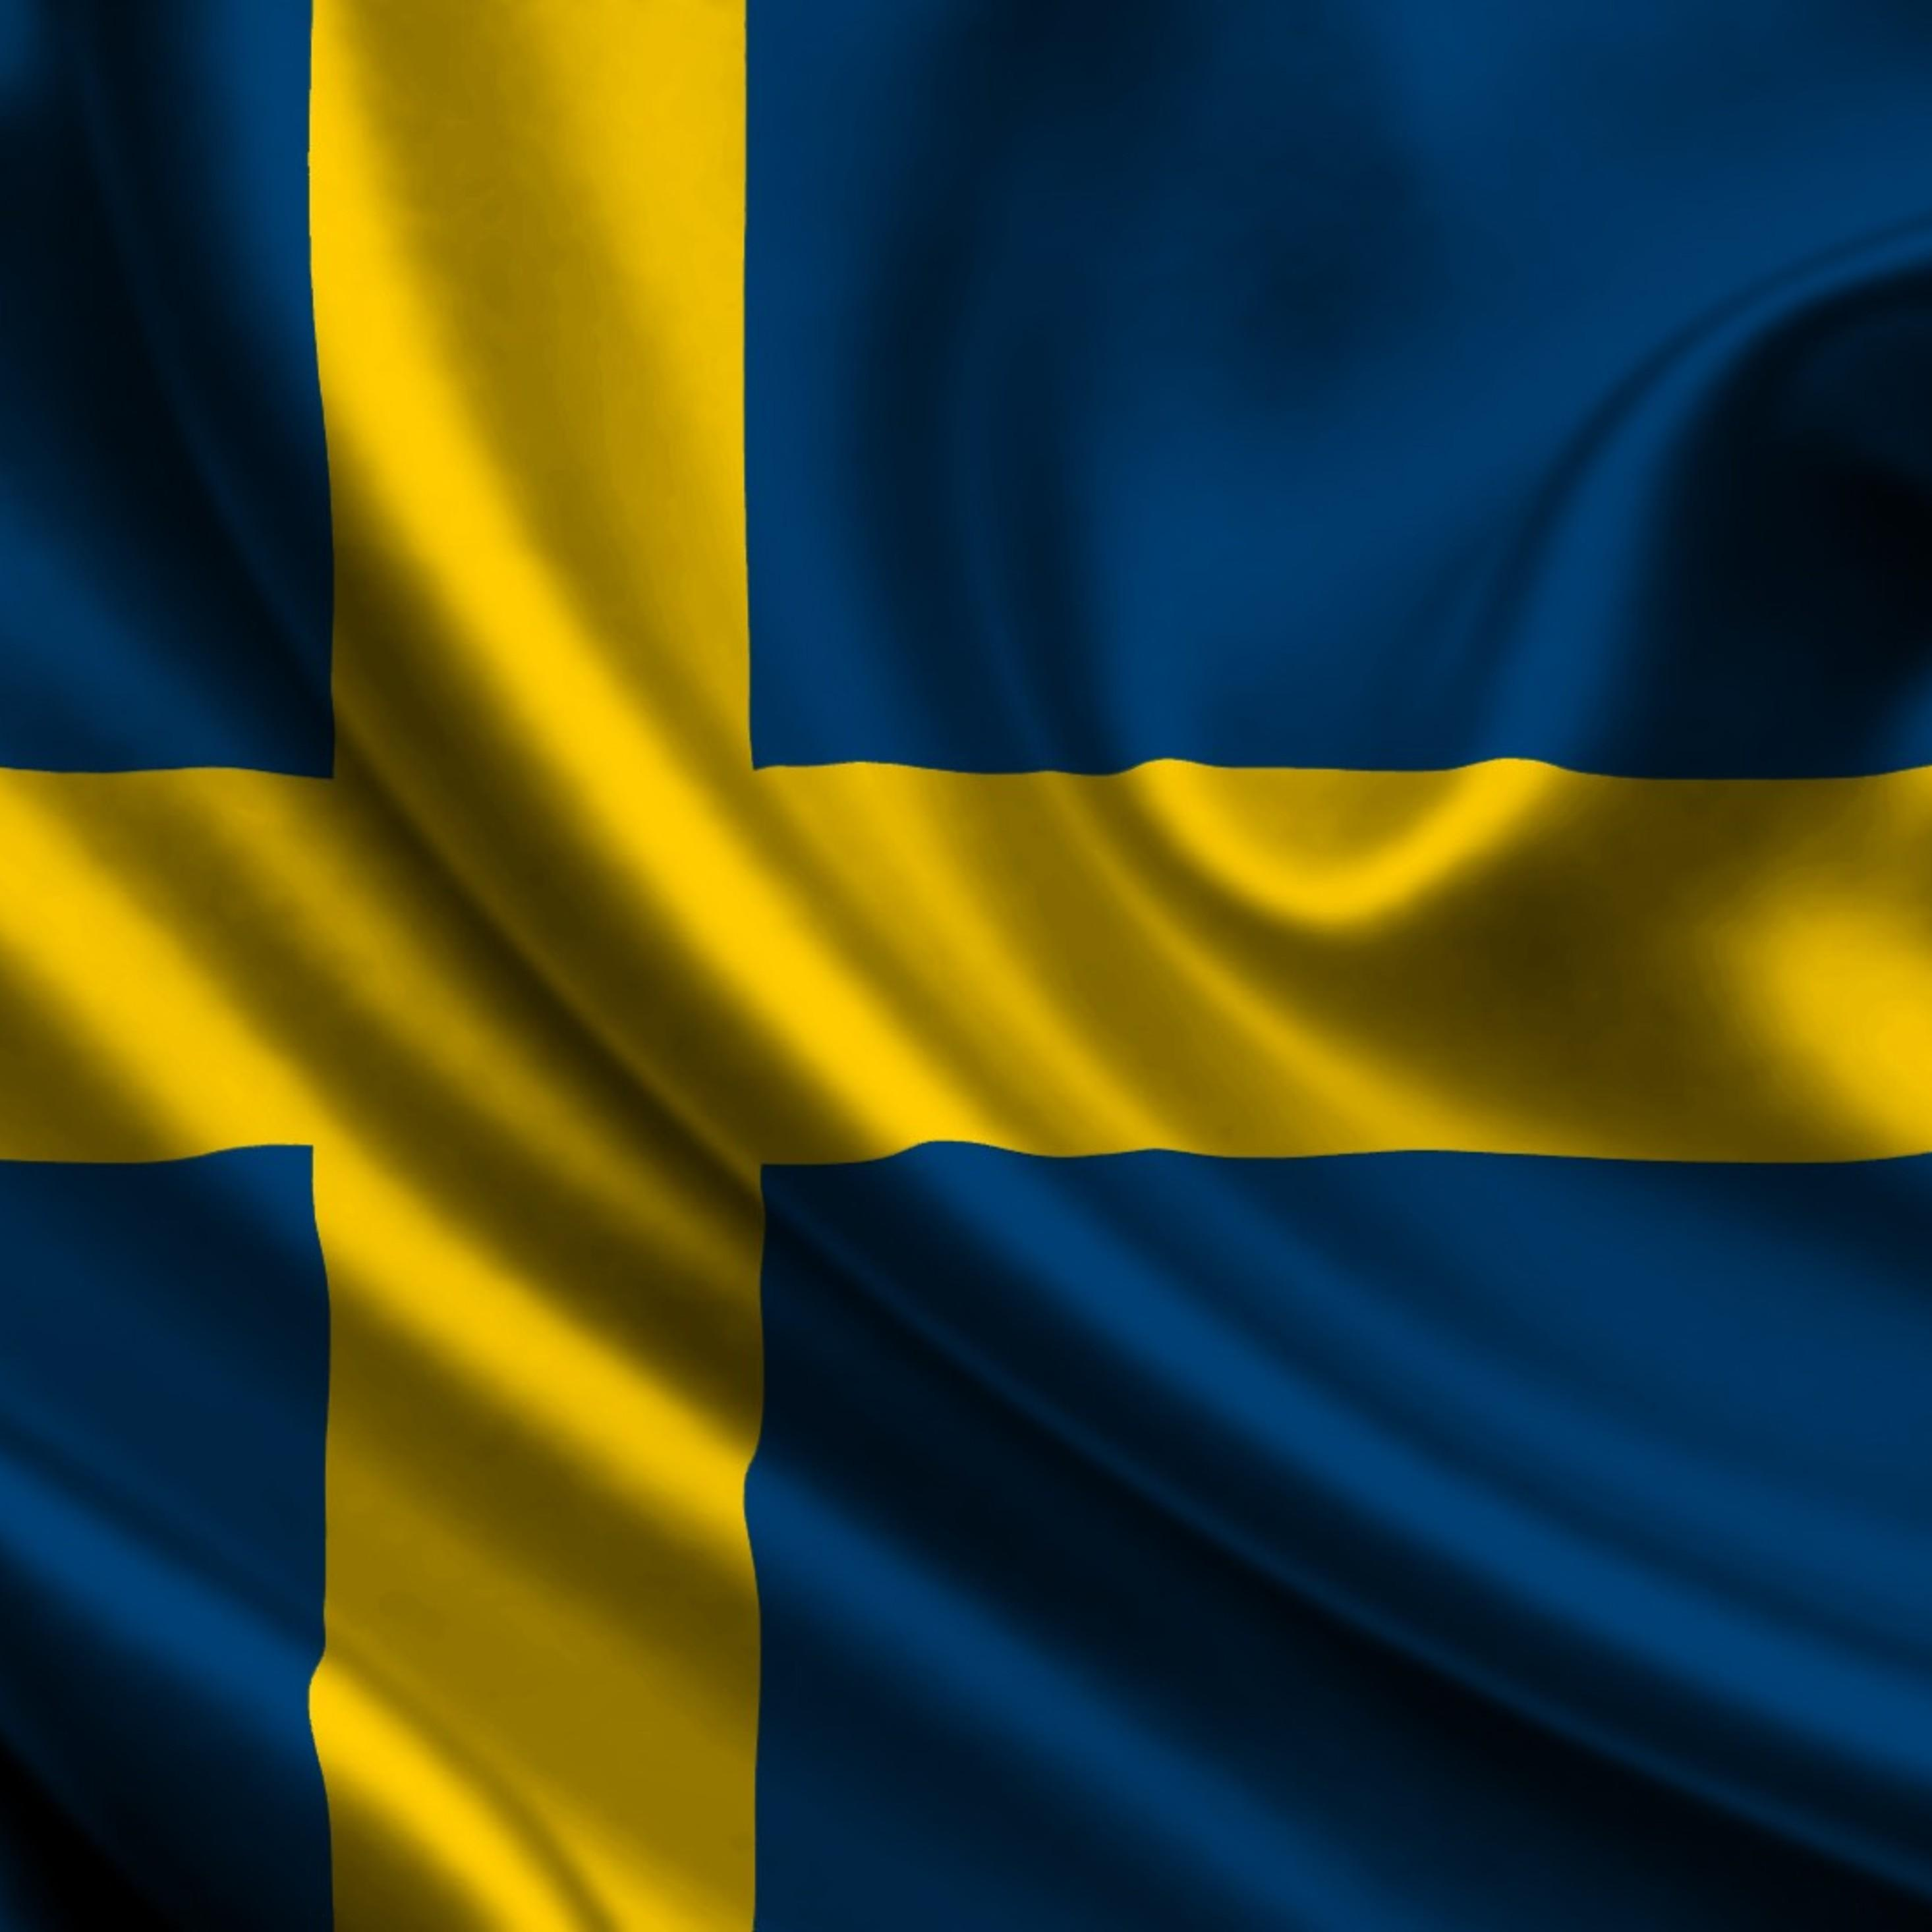 2932x2932 Sweden Flag Ipad Pro Retina Display HD 4k Wallpapers